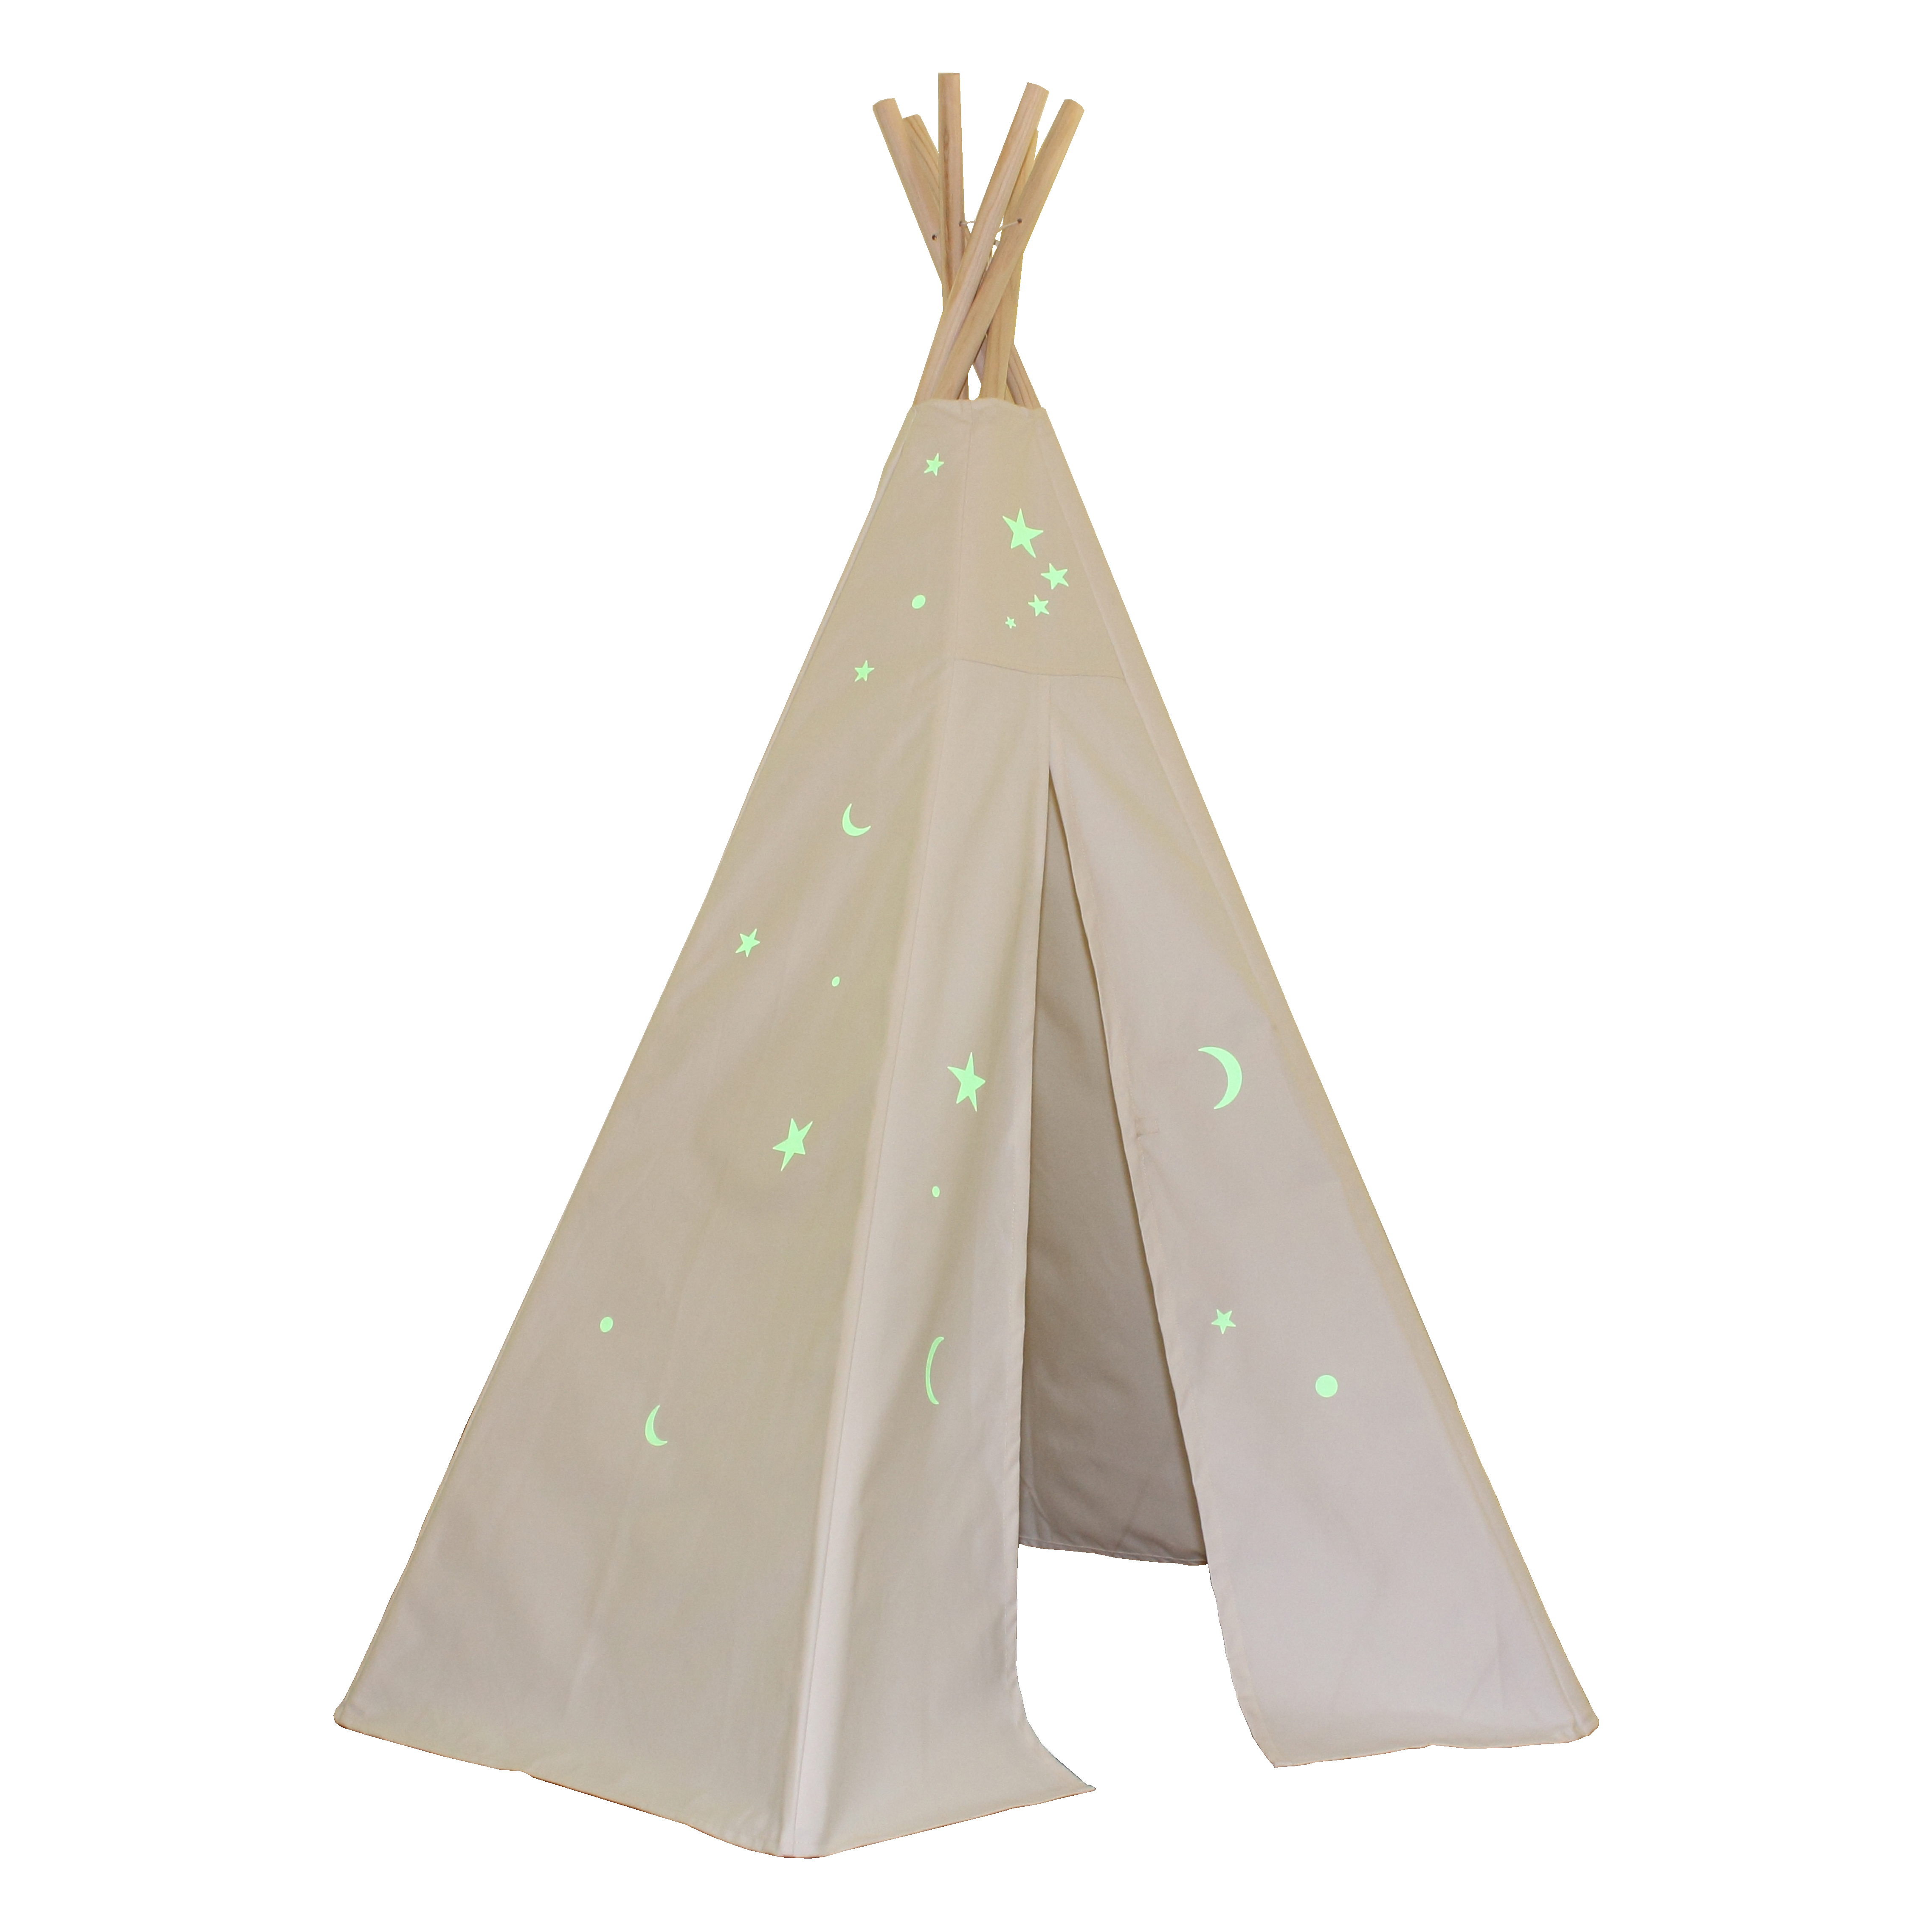 6ft Great Plains Teepee w/ Glow in the Dark Stars Thumbnail 1